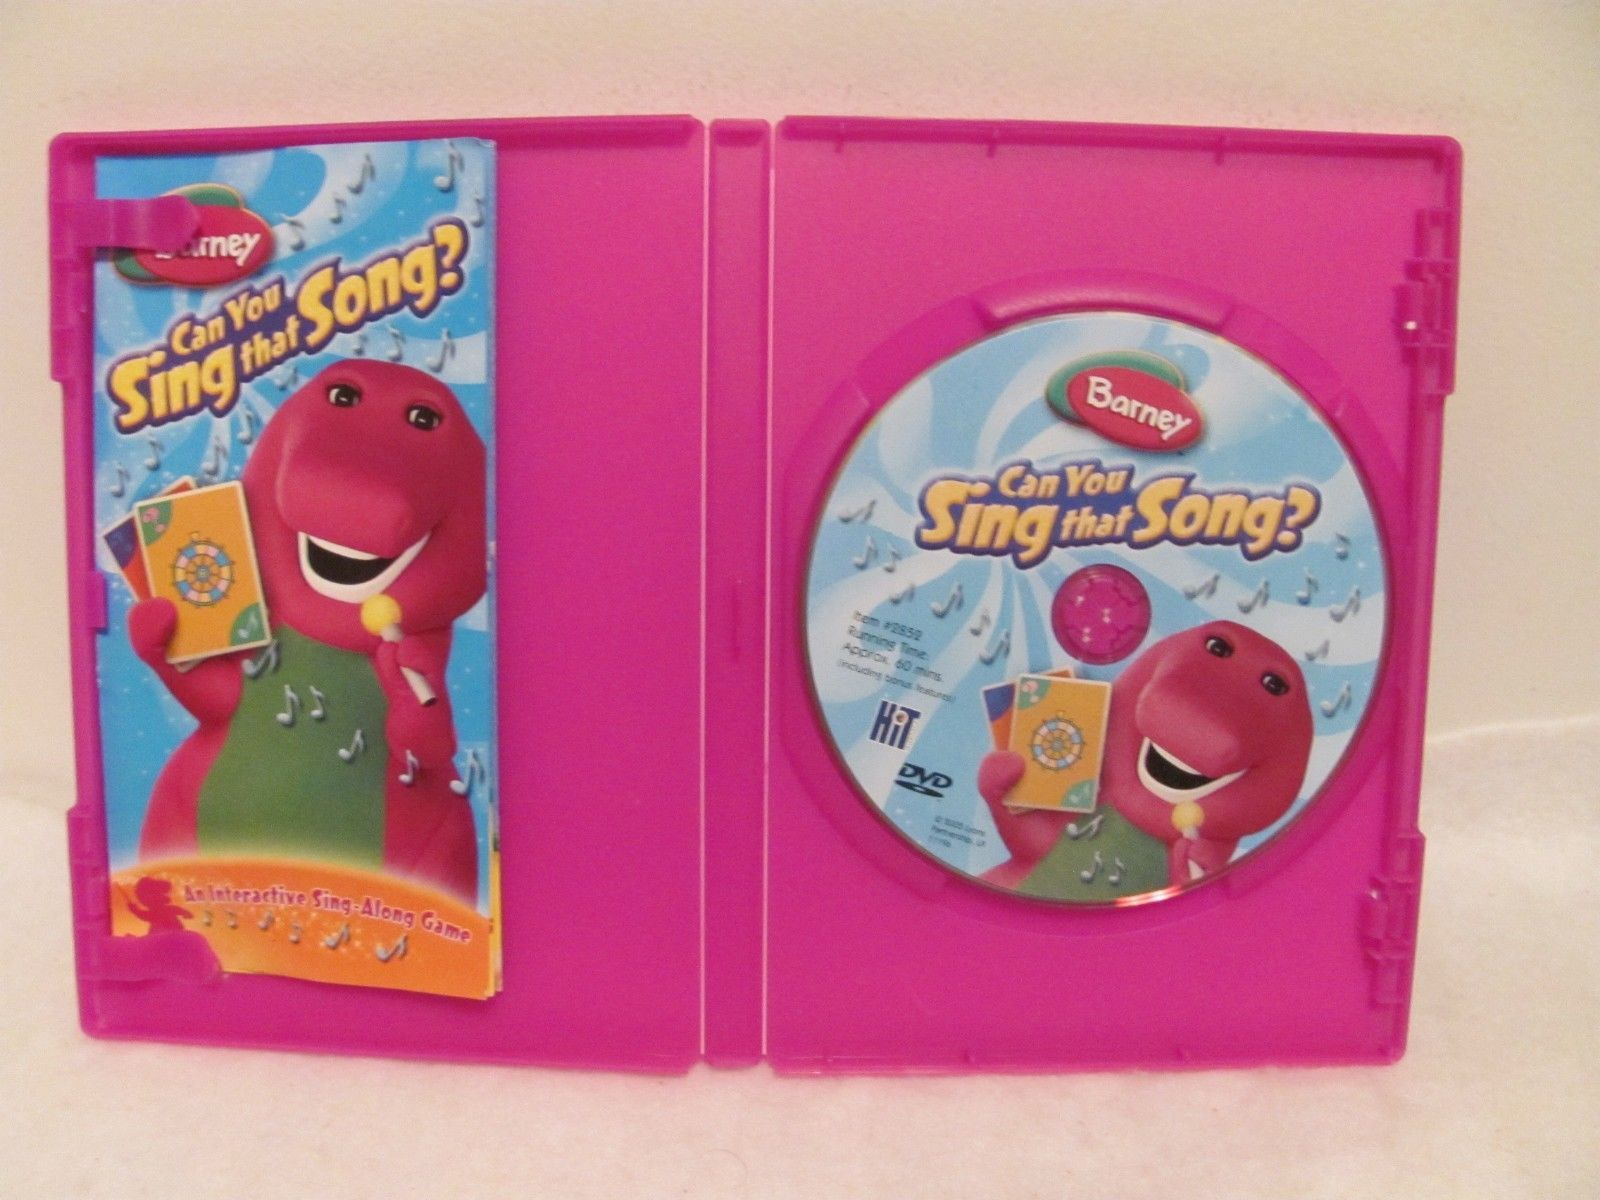 DVD Barney - Can You Sing That Song? (DVD, 2007) - DVD, HD